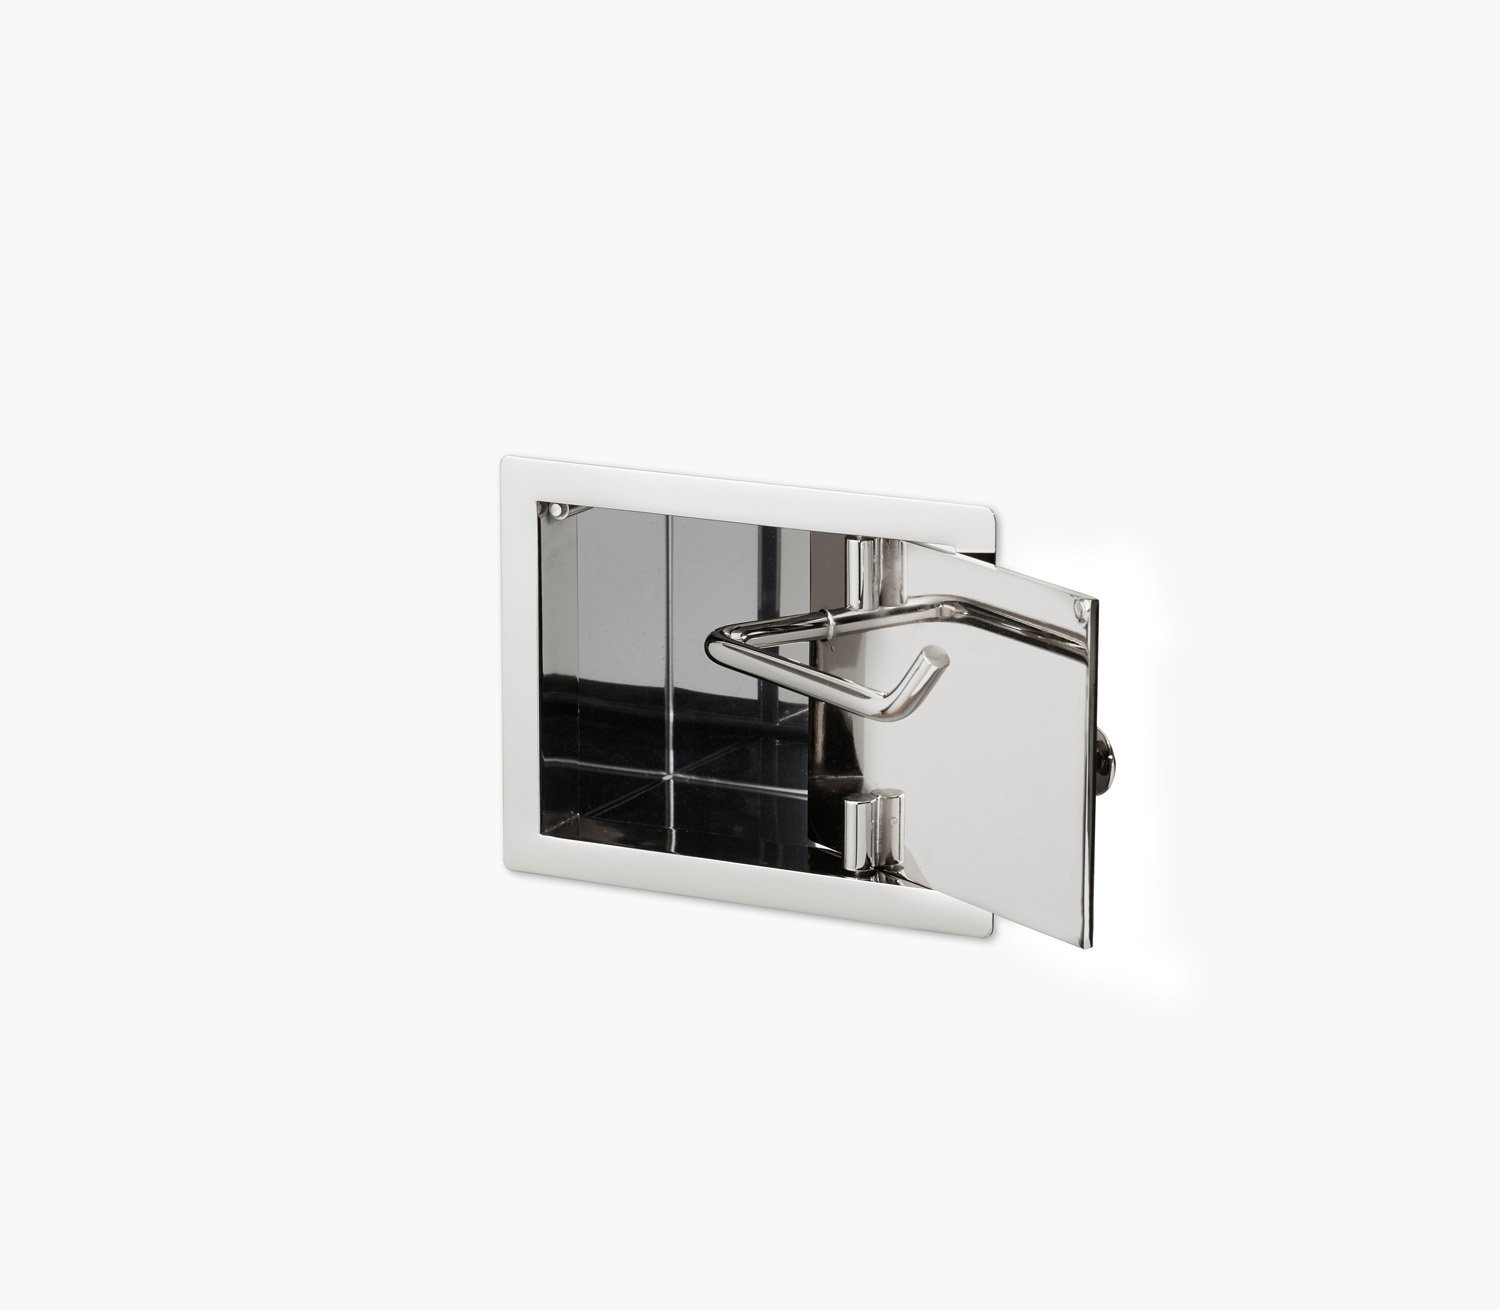 Wall Recessed Toilet Paper Holder II Product Image 3